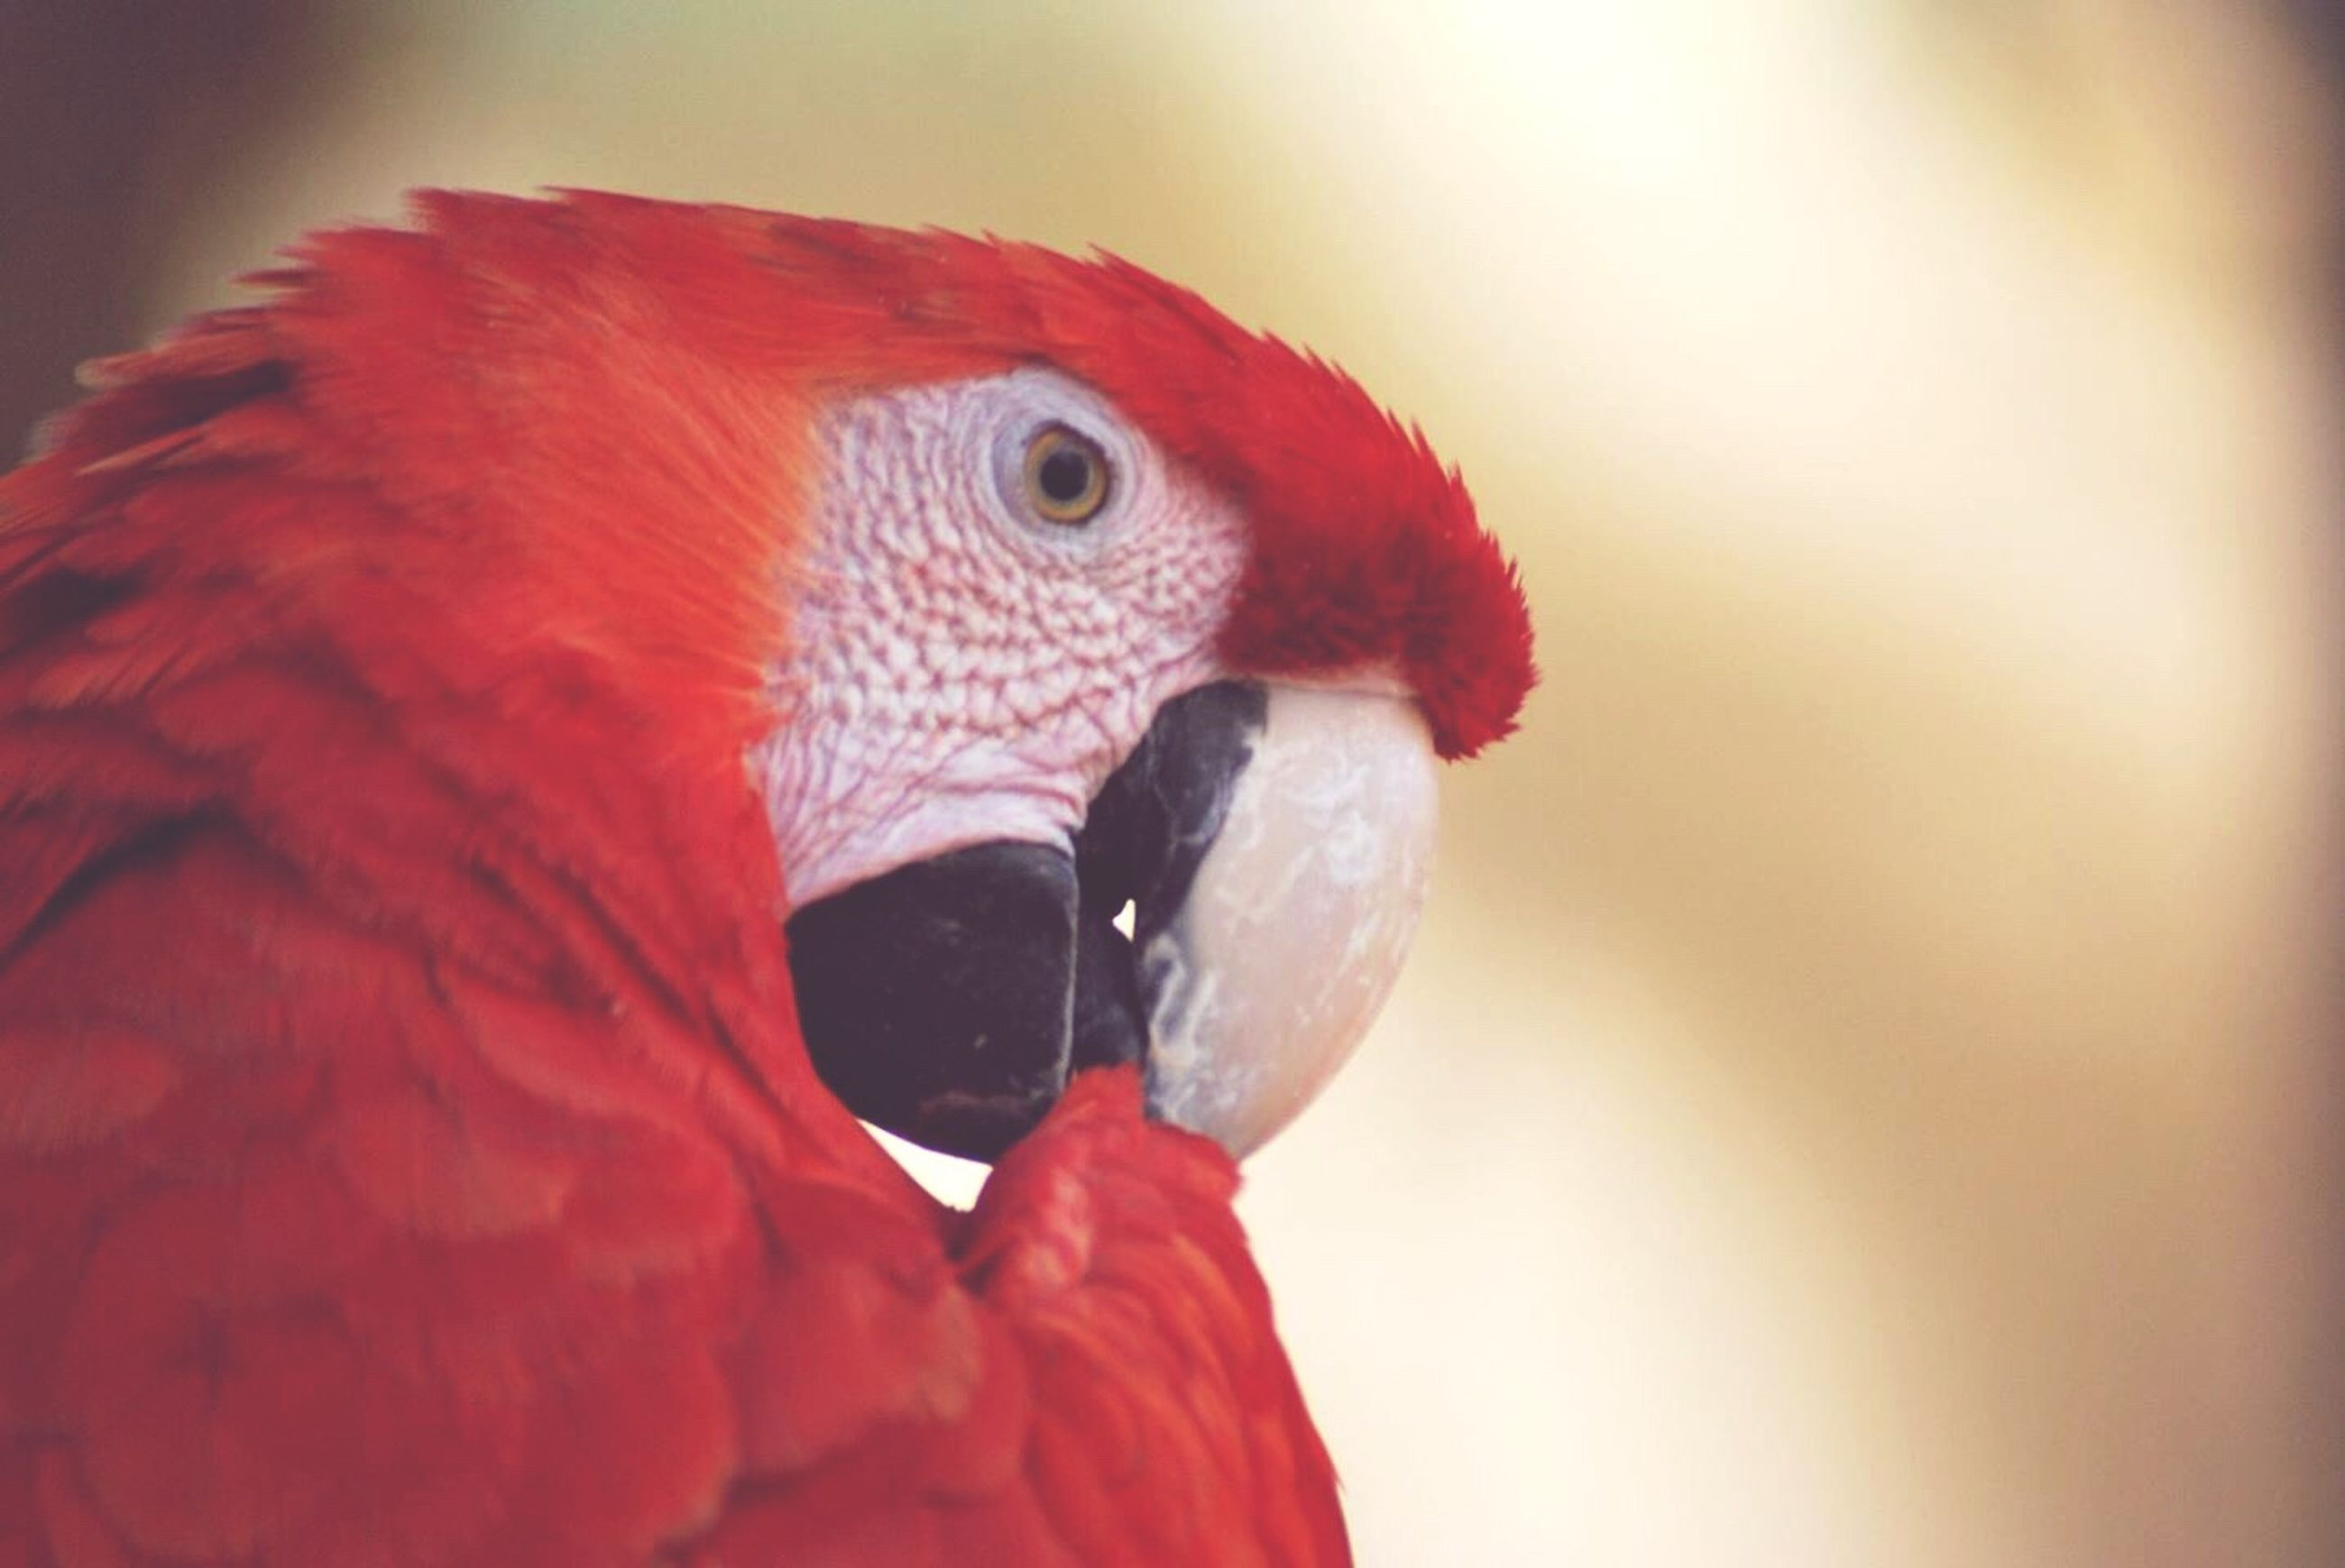 animal themes, one animal, bird, animals in the wild, wildlife, close-up, beak, parrot, red, animal head, focus on foreground, indoors, side view, multi colored, feather, fish, animal body part, nature, no people, zoology